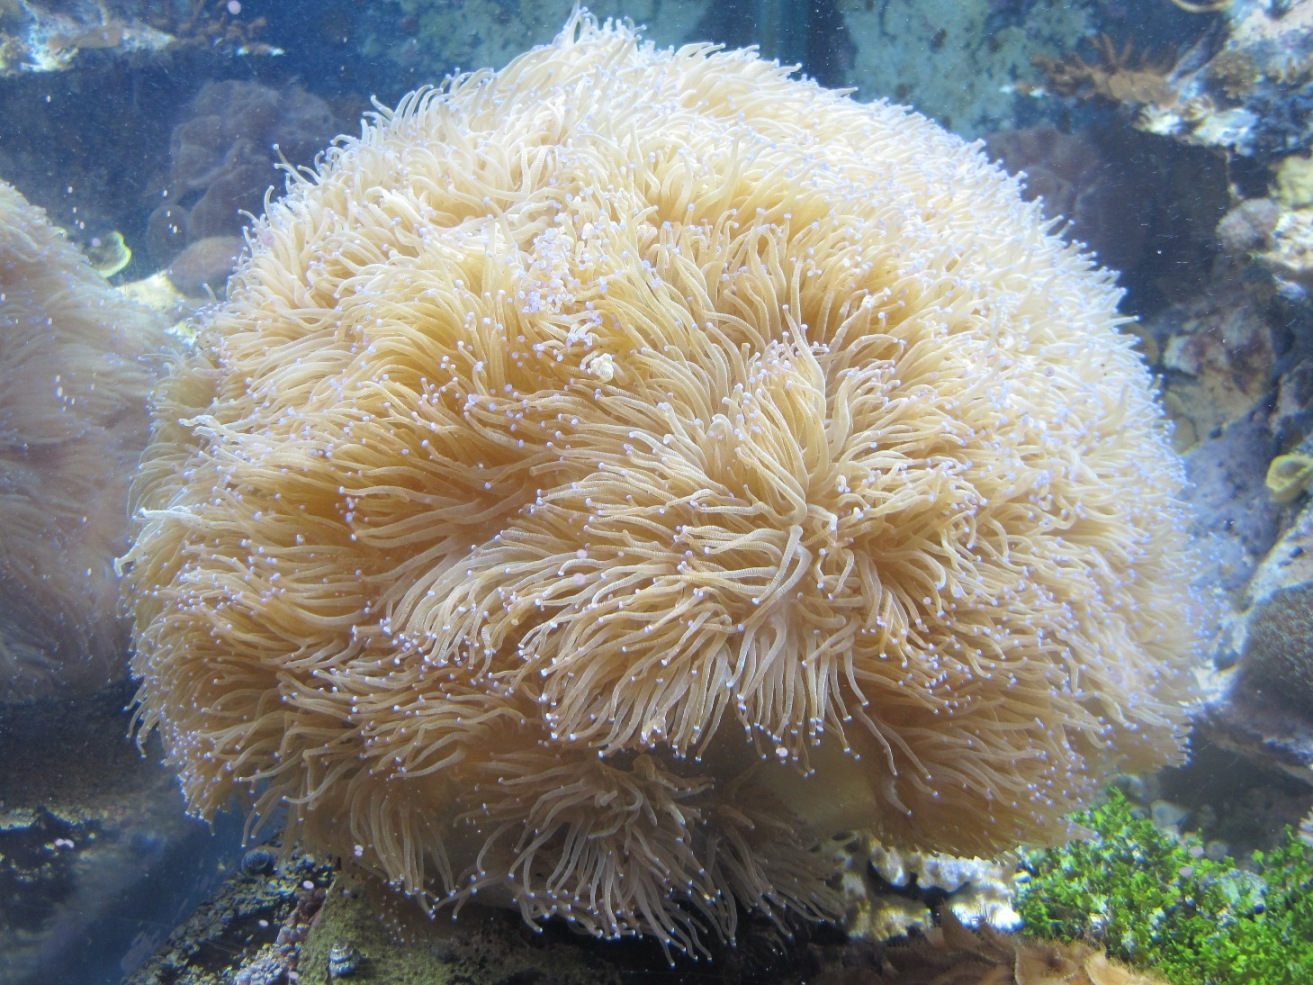 Tropical ocean animals and plants - photo#26